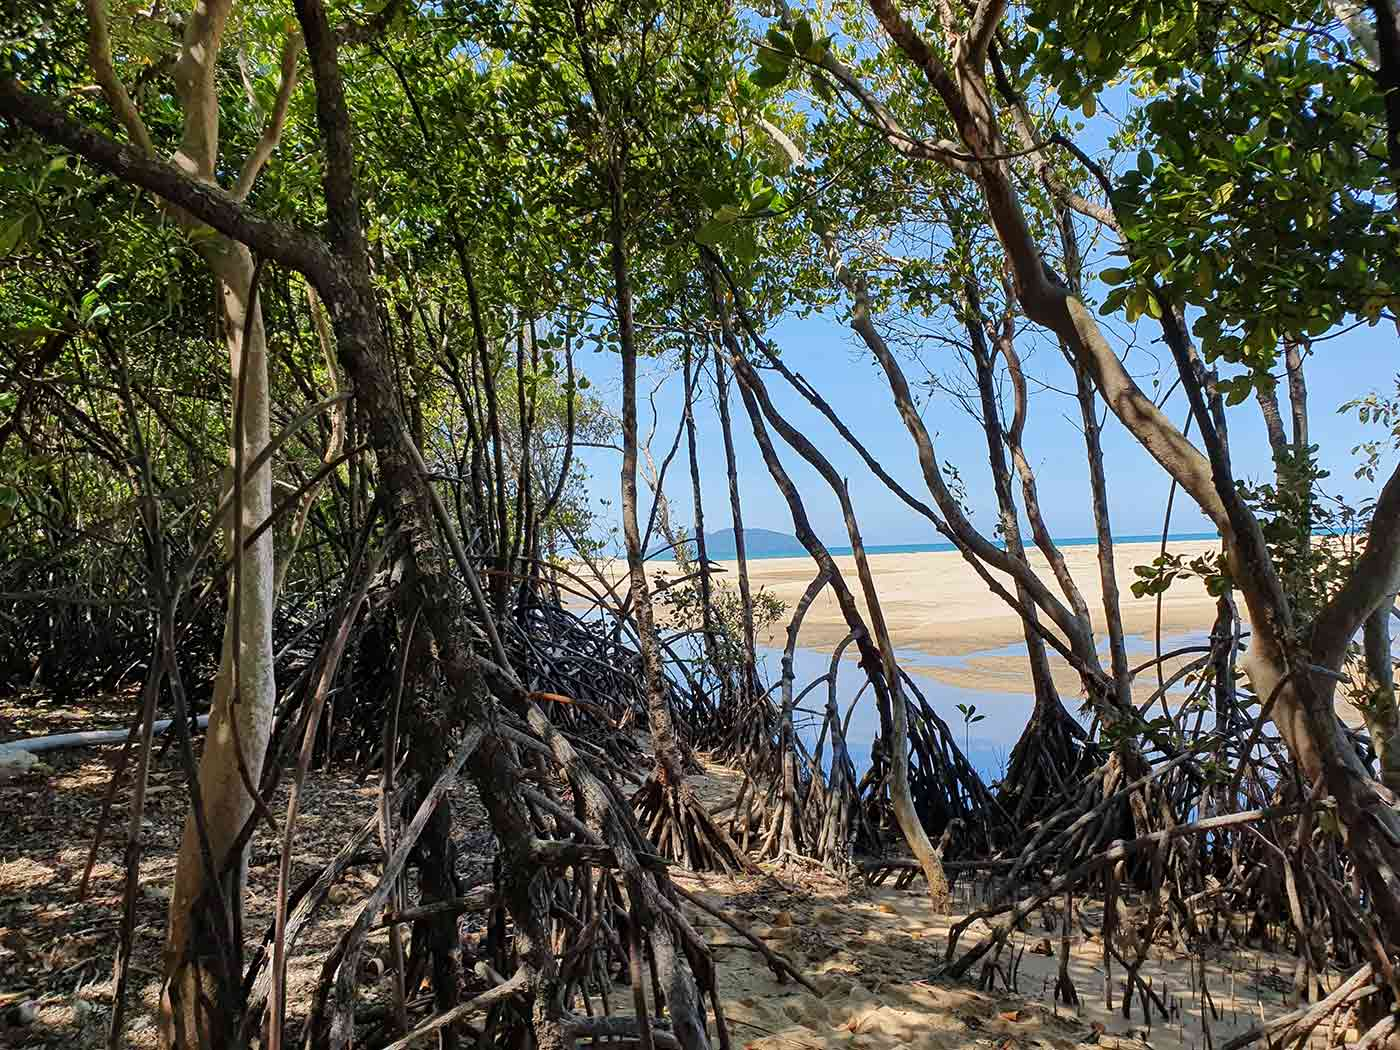 Colour photo of a view from mangrove trees looking out to a beach and ocean with an island in the distance.